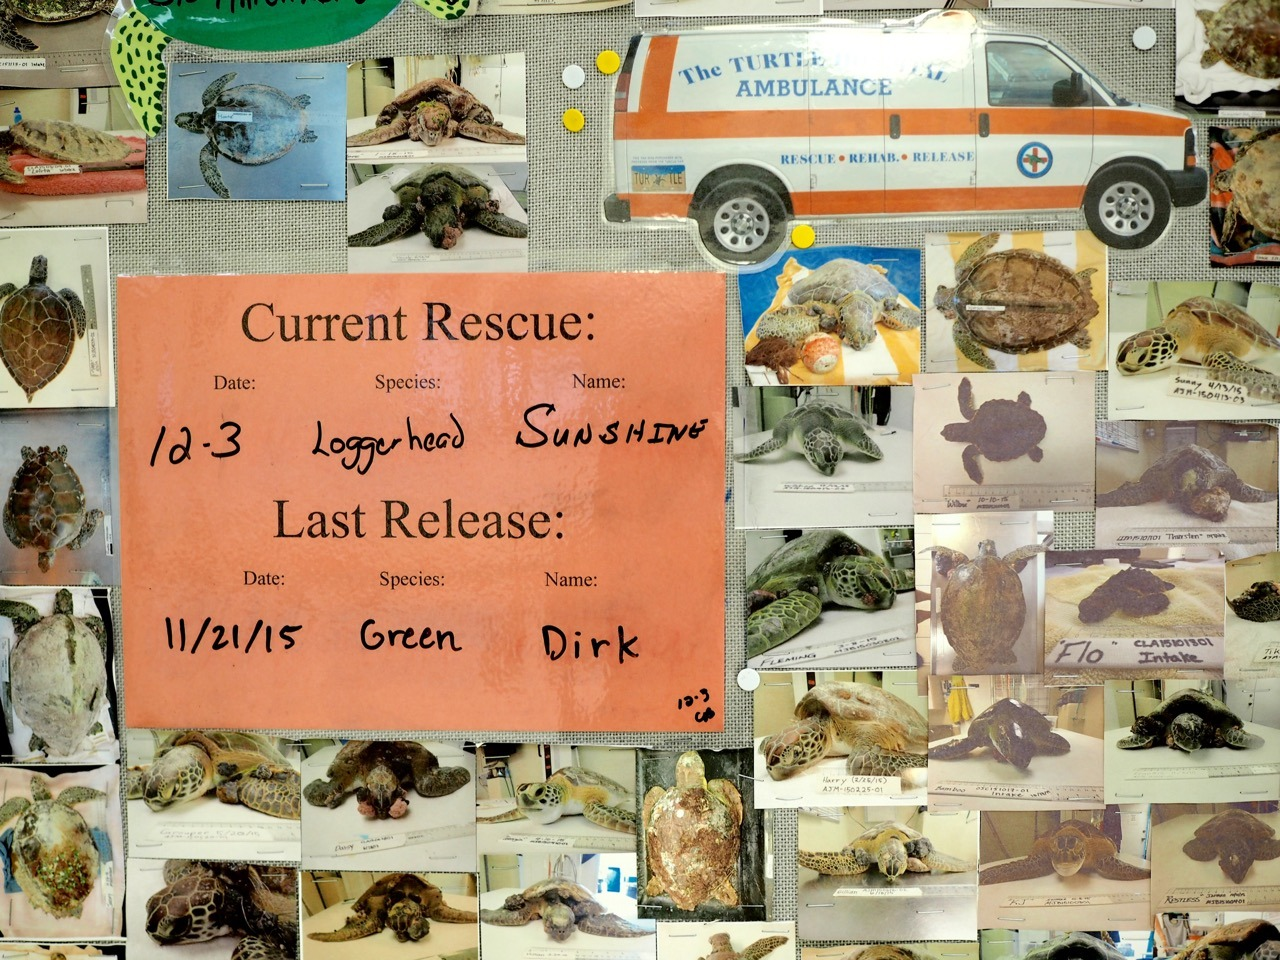 Turtle Hospital in The Florida Keys